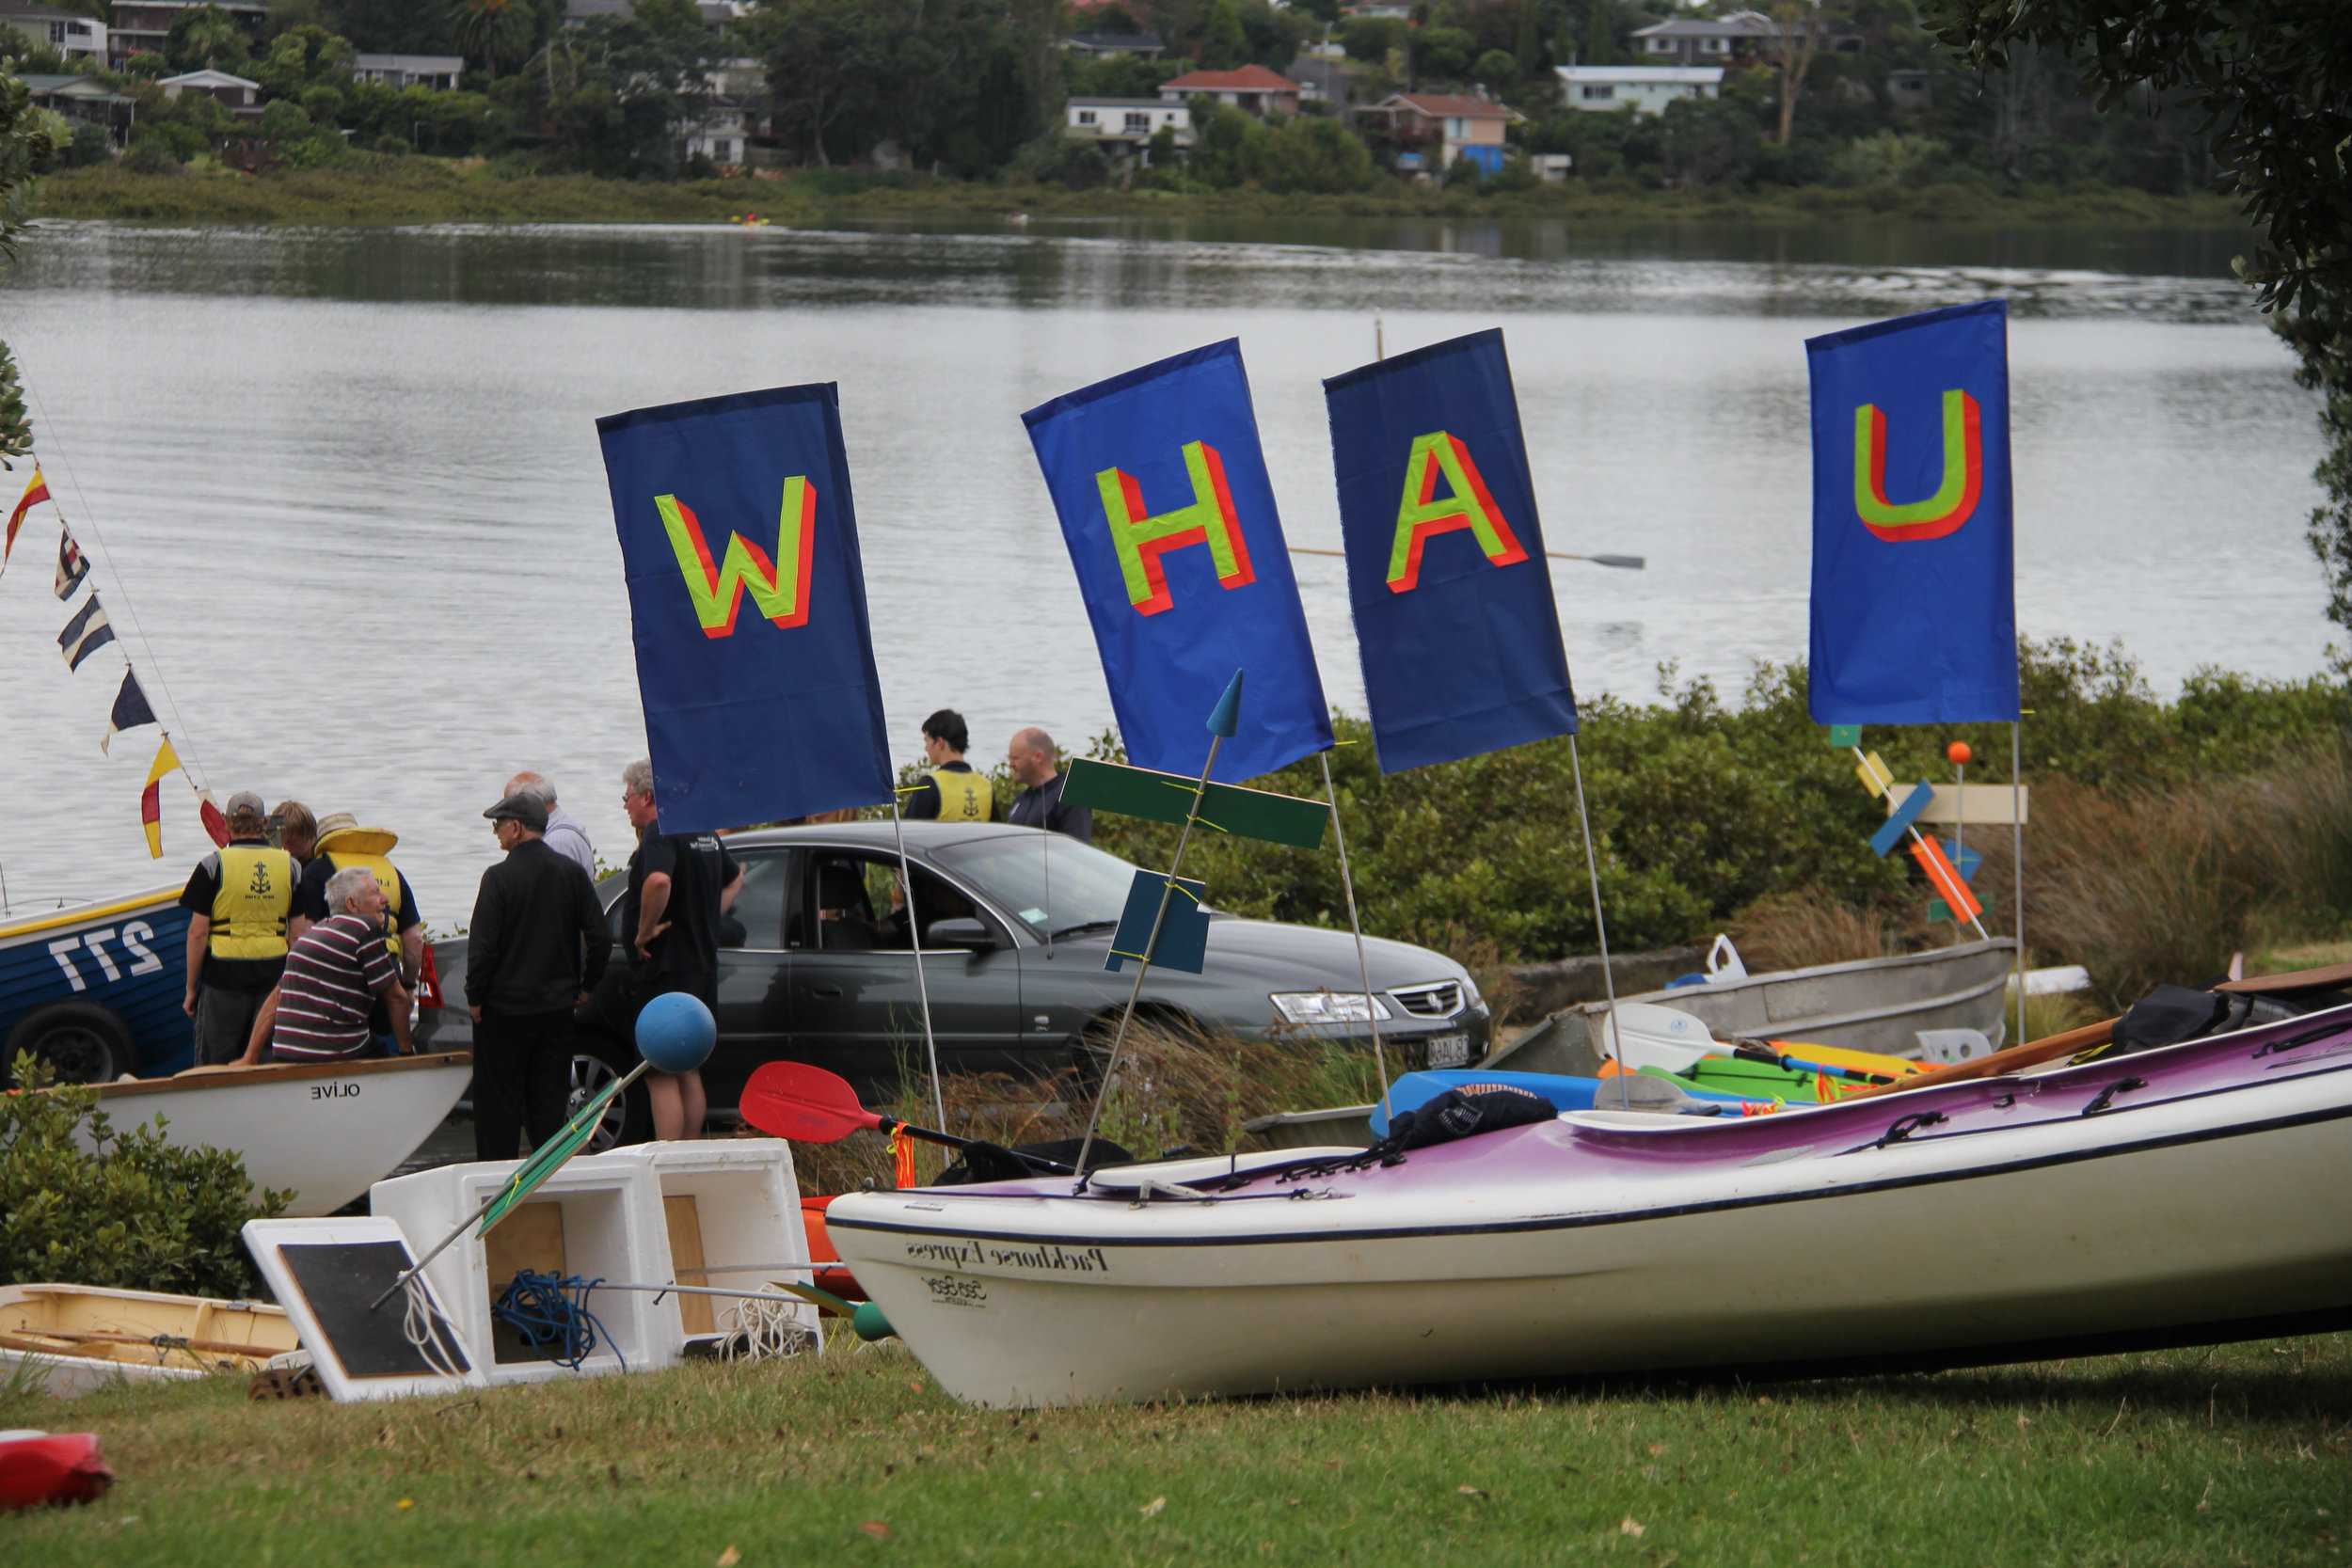 whau kayak signs.jpg